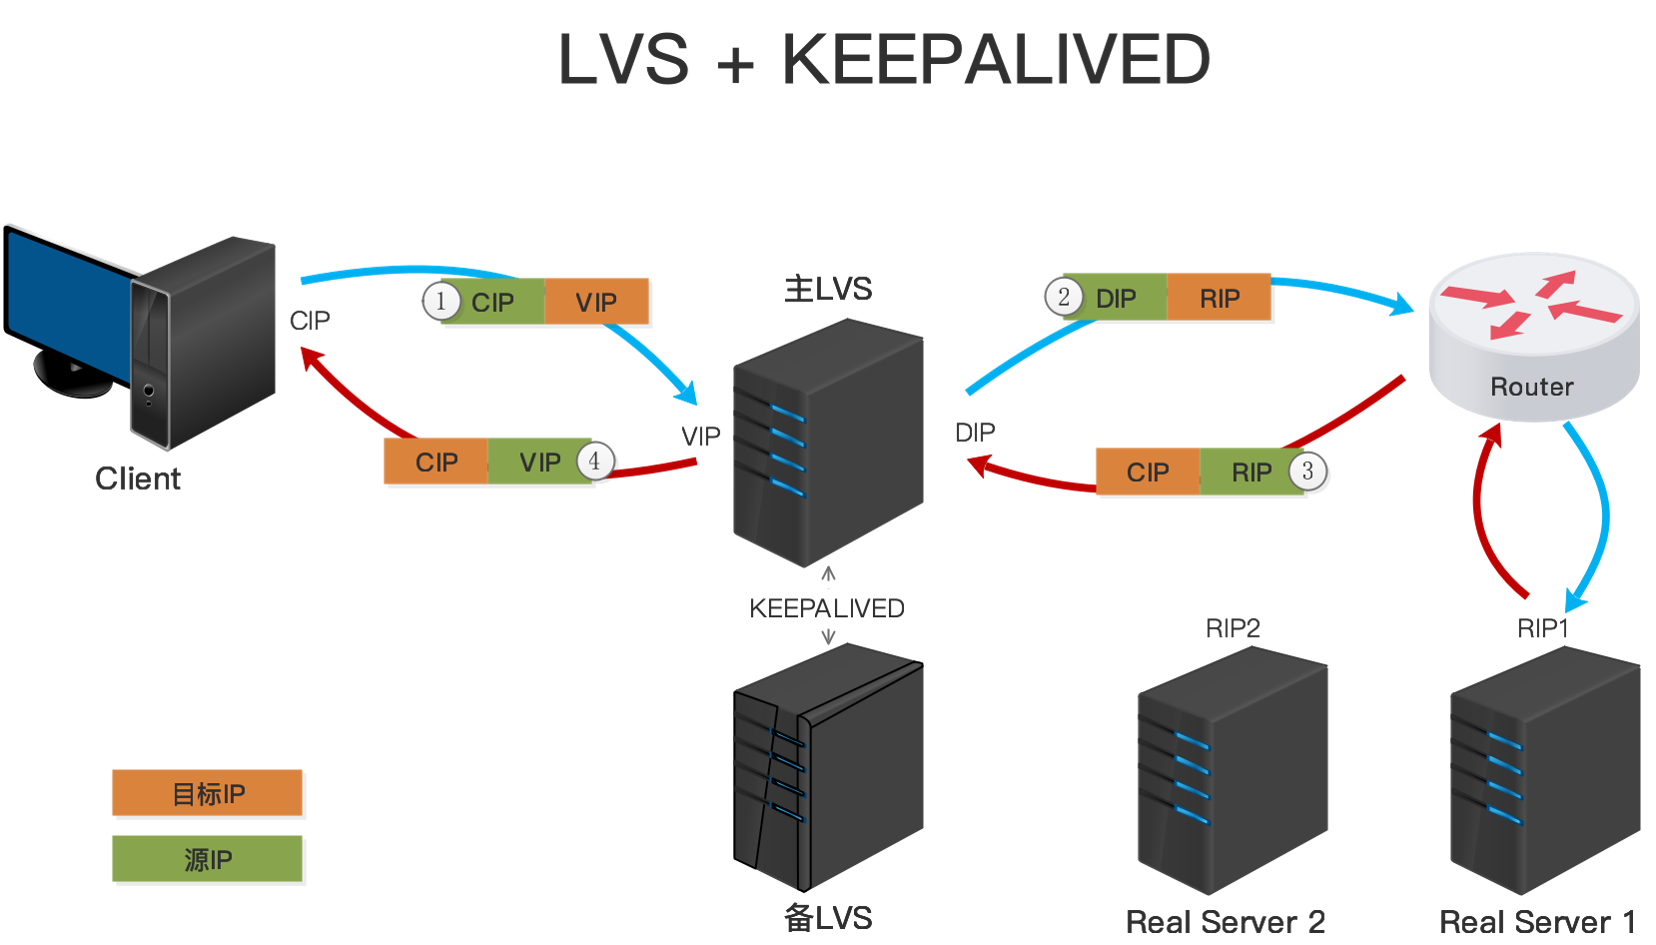 LVS-Keepalived.png